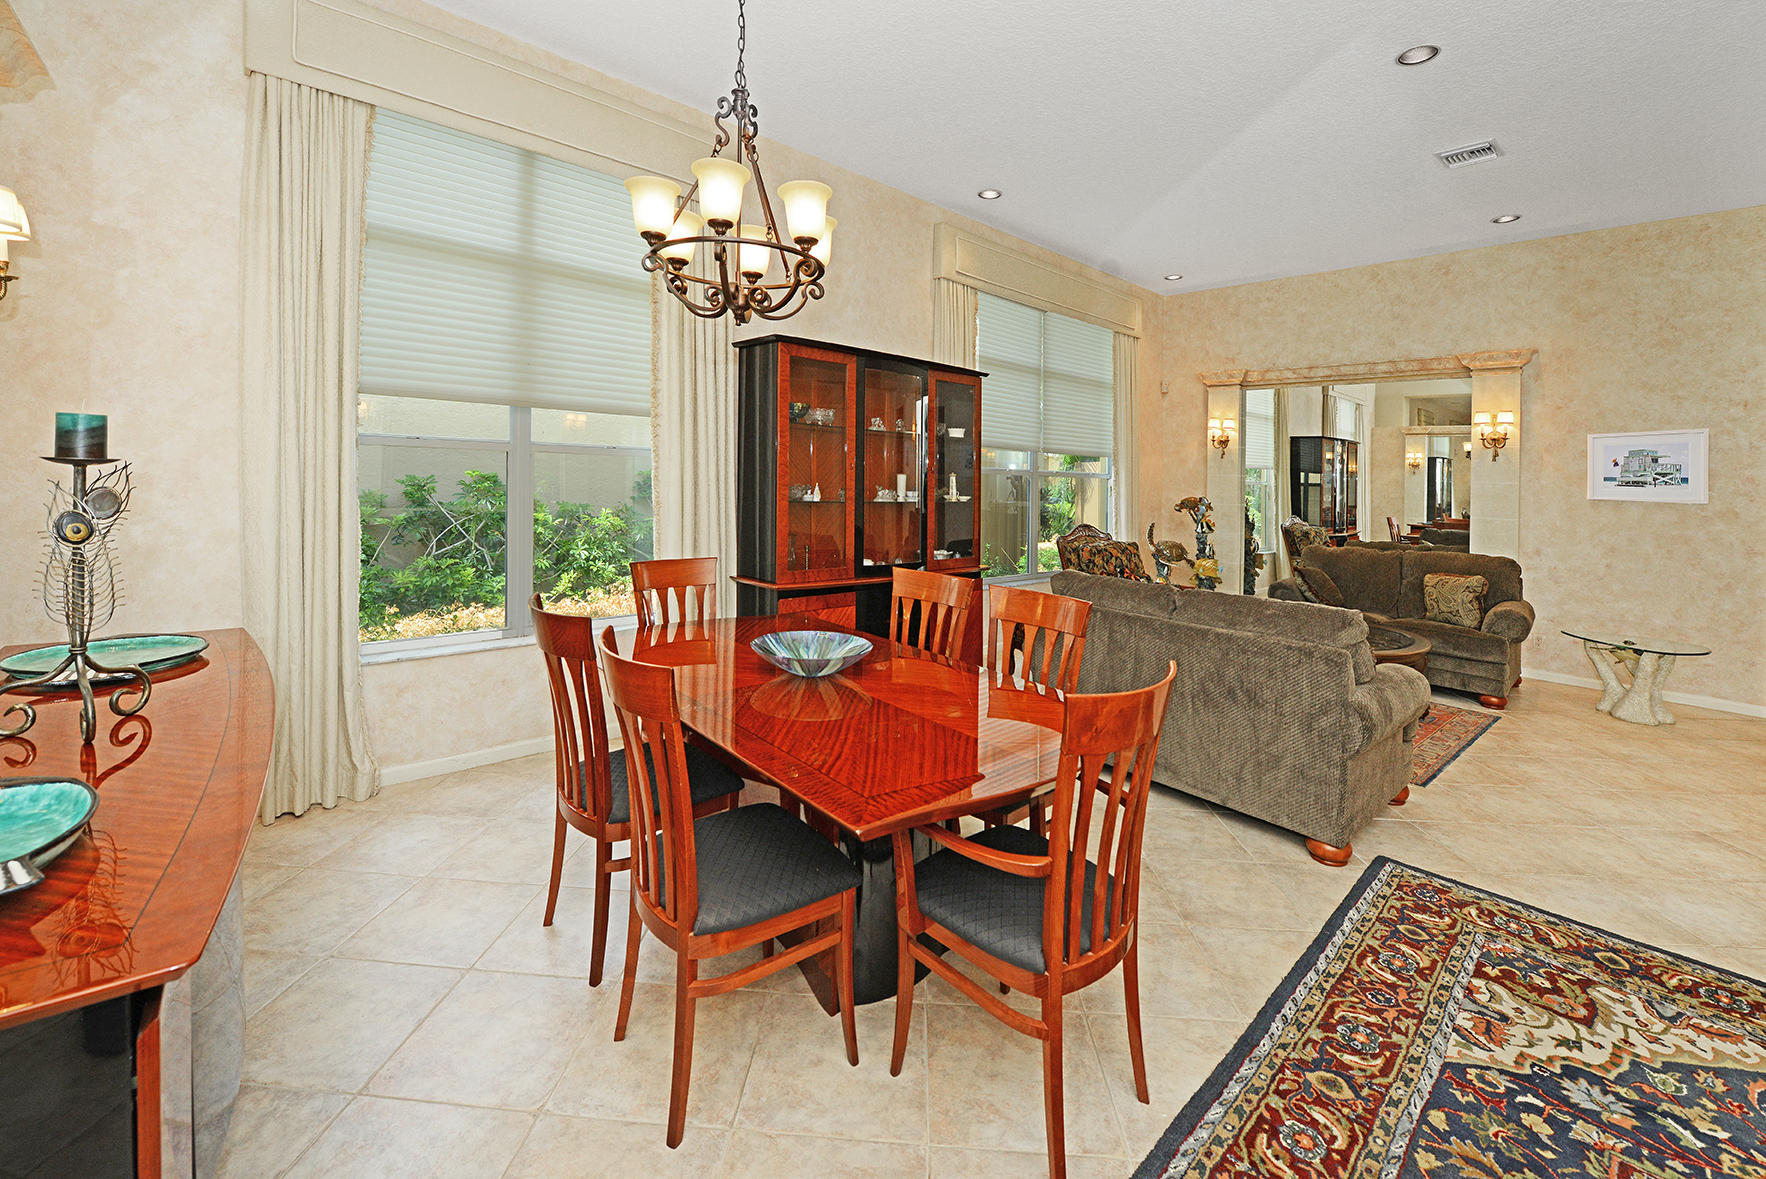 6630 23rd Terrace, Boca Raton, Florida 33496, 3 Bedrooms Bedrooms, ,3 BathroomsBathrooms,Residential,For Sale,23rd,RX-10544923